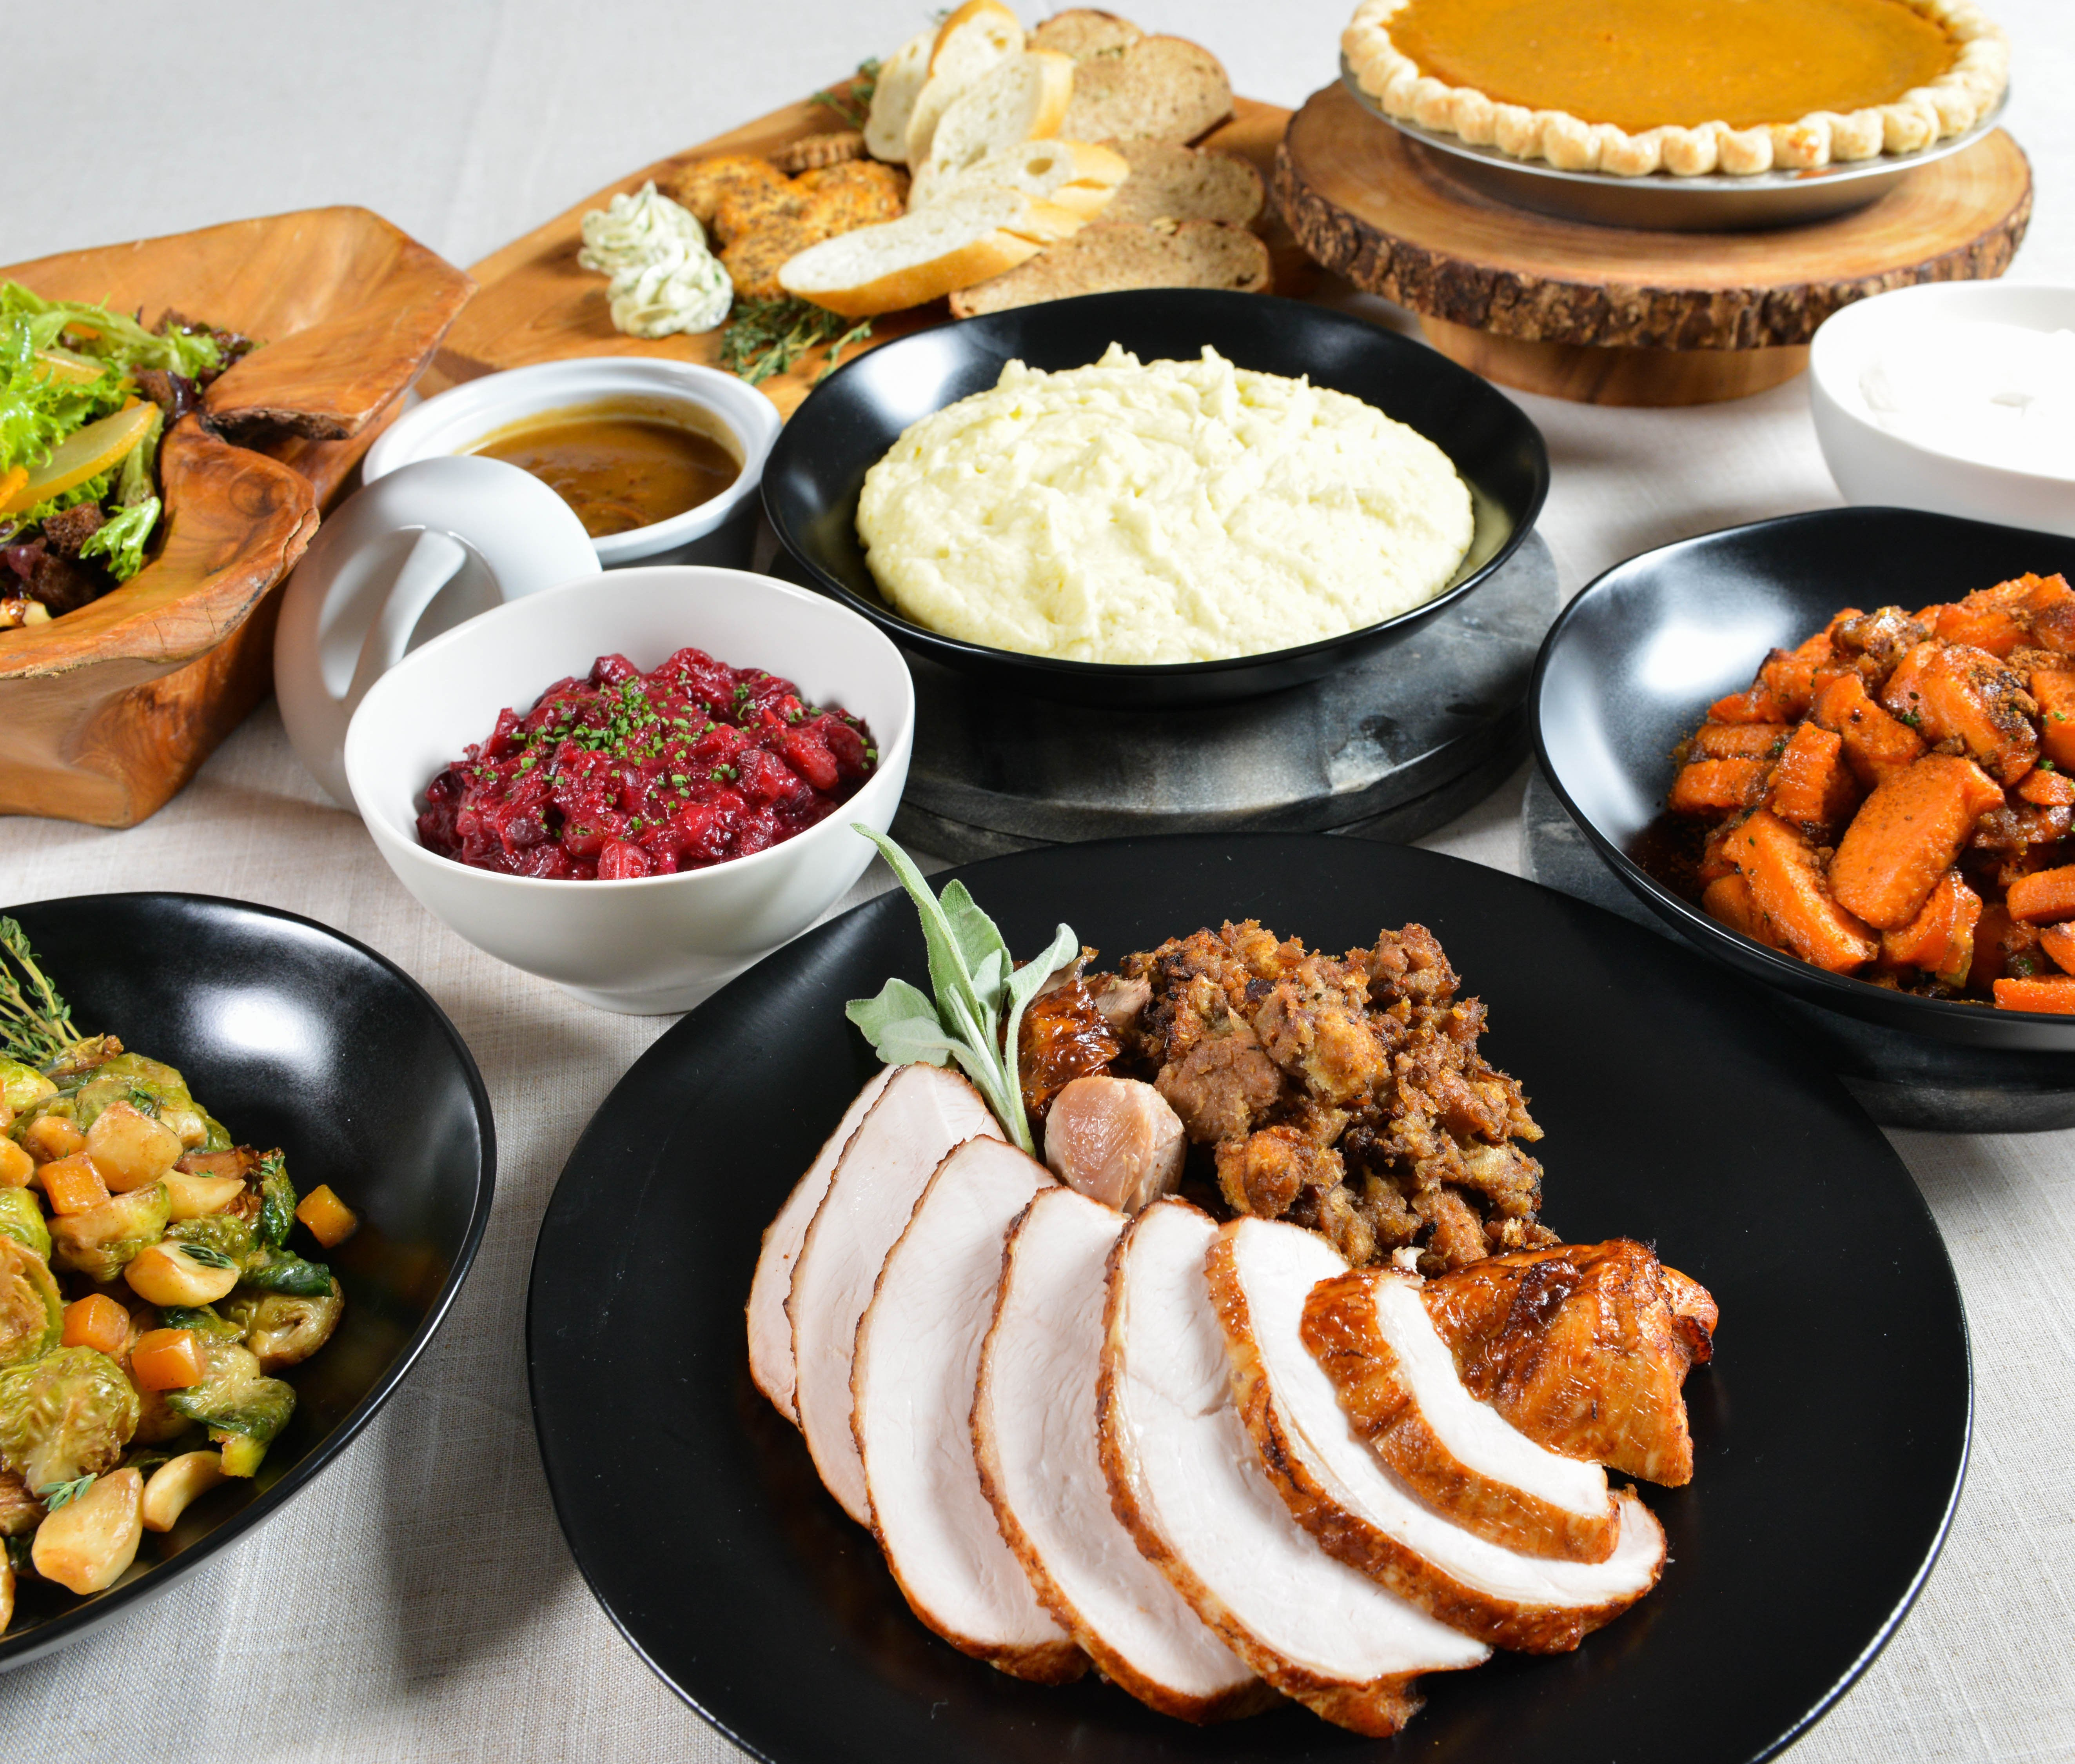 ThanksgivingToGo2017.jpg#asset:2350